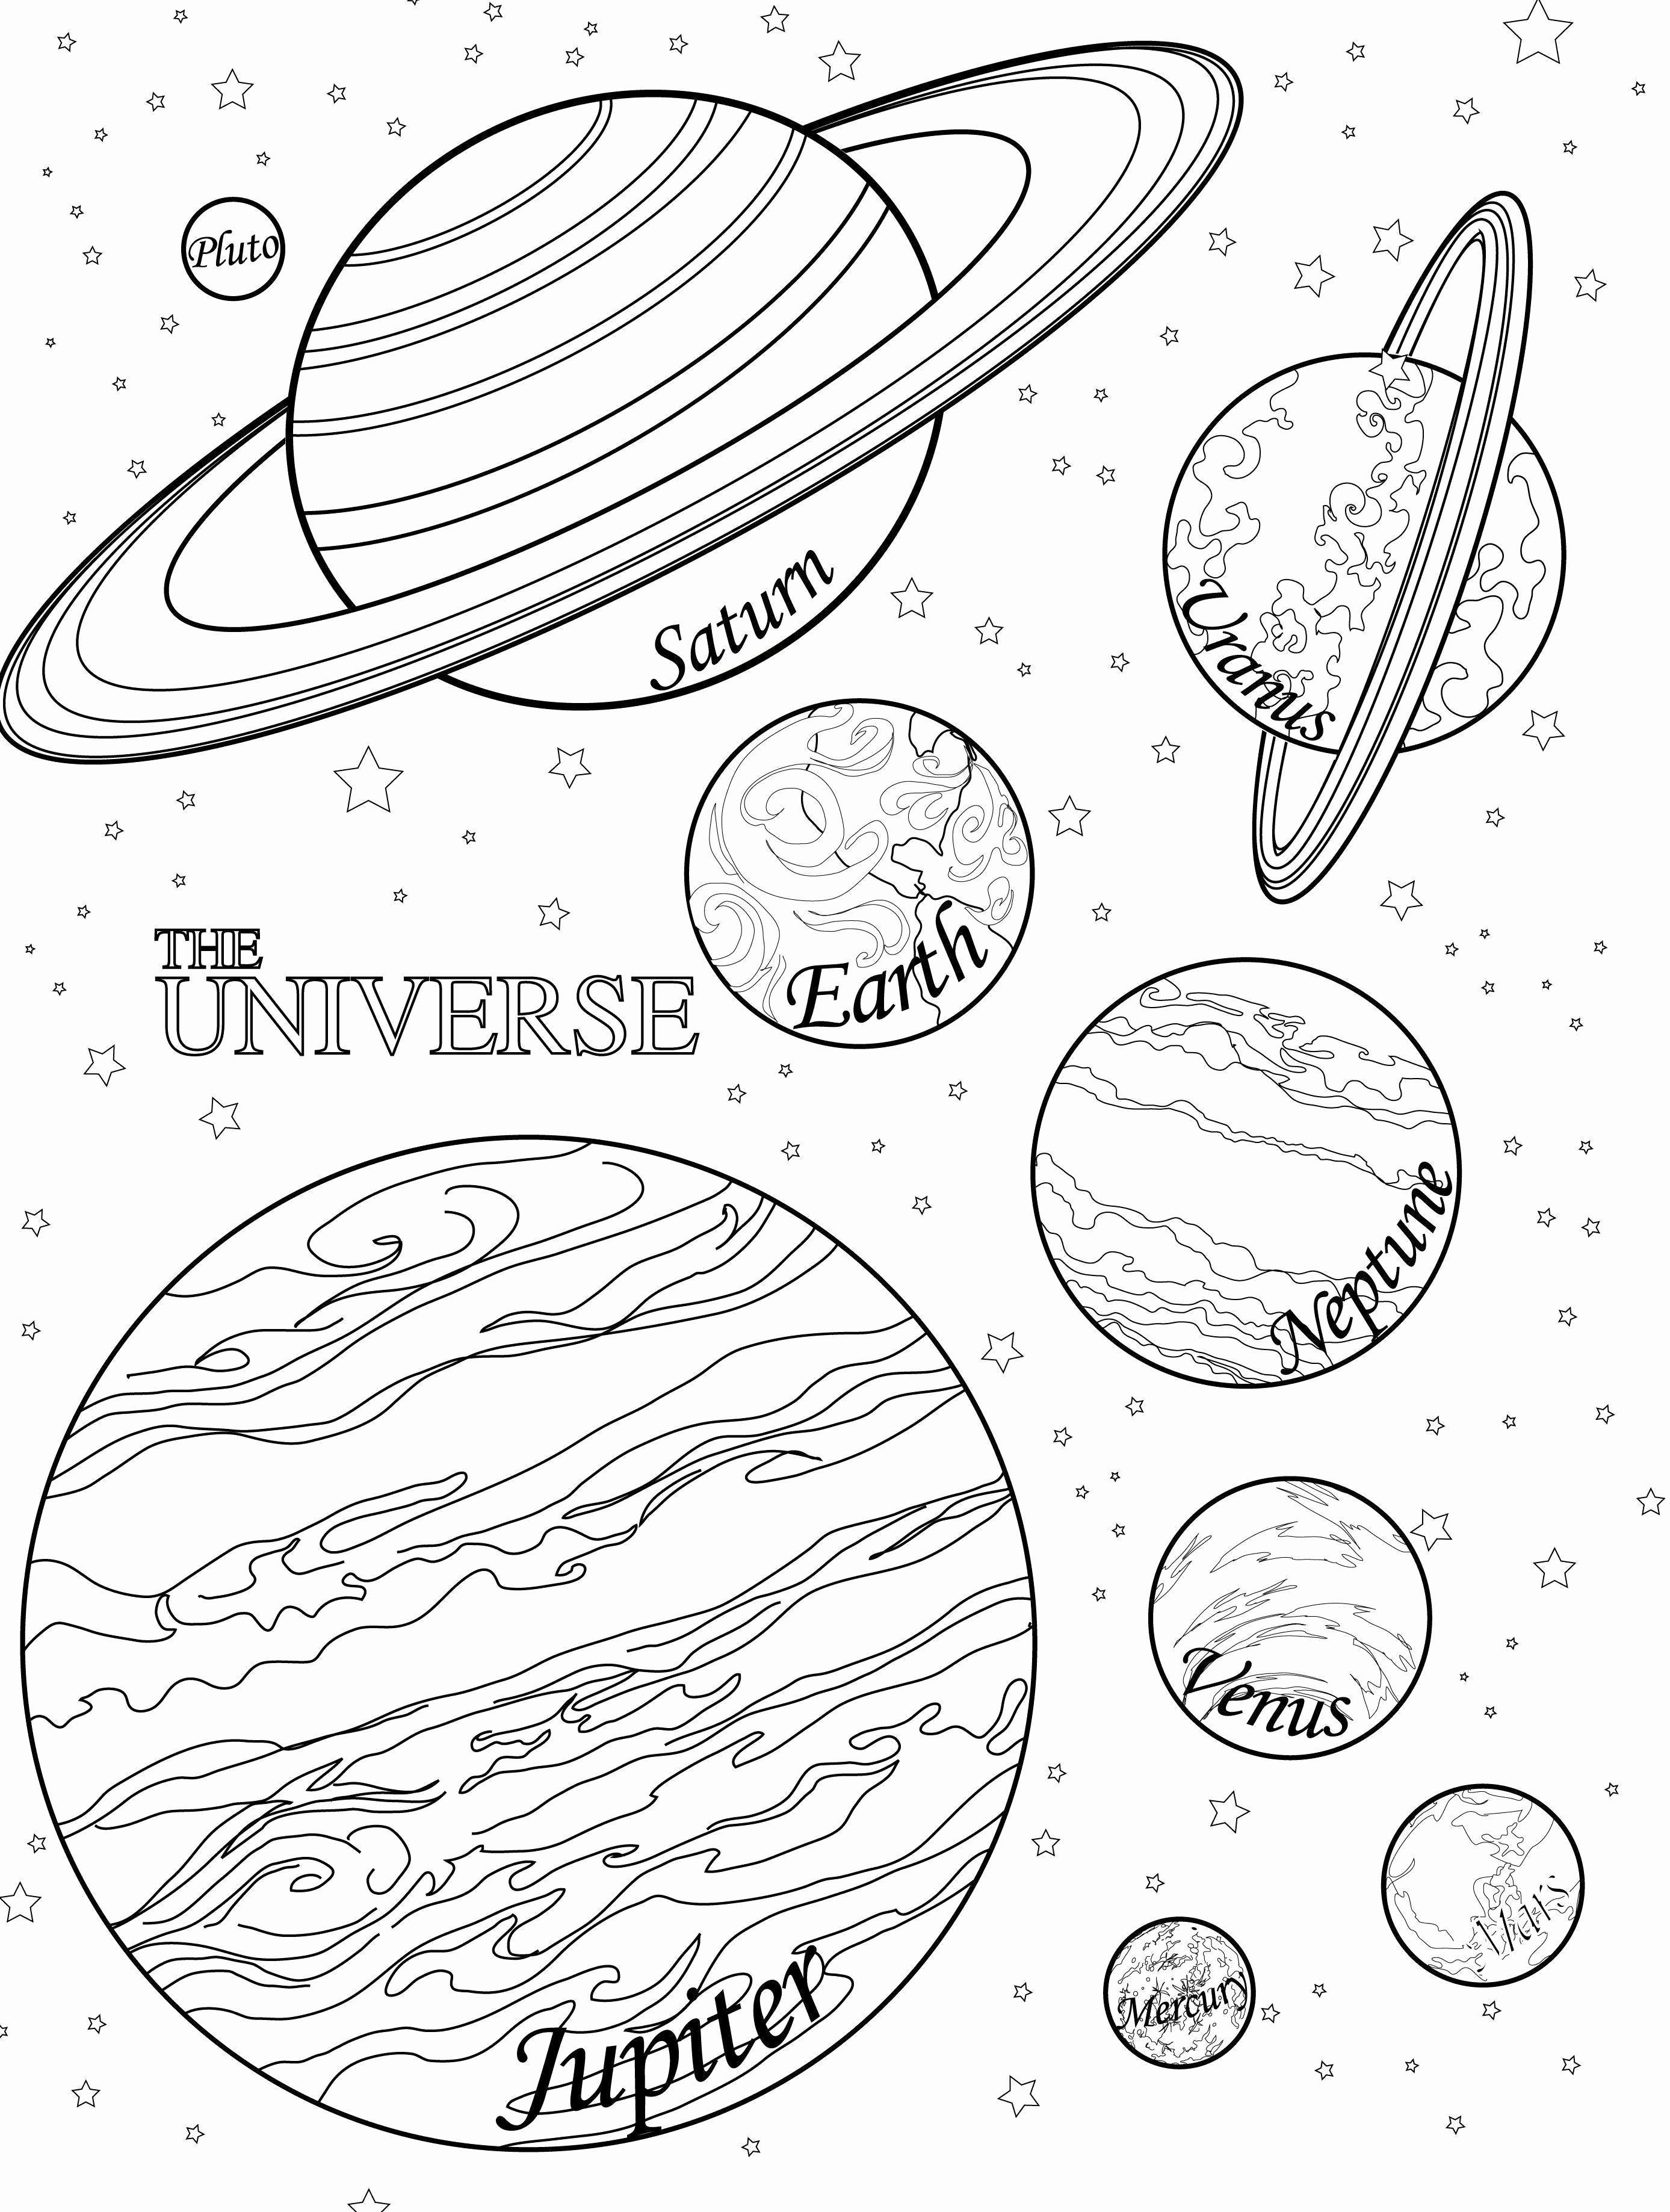 Animal Coloring Pages For 9 Year Olds Inspirational Luxury Printable Coloring Pages For Solar System Coloring Pages Planet Coloring Pages Space Coloring Pages